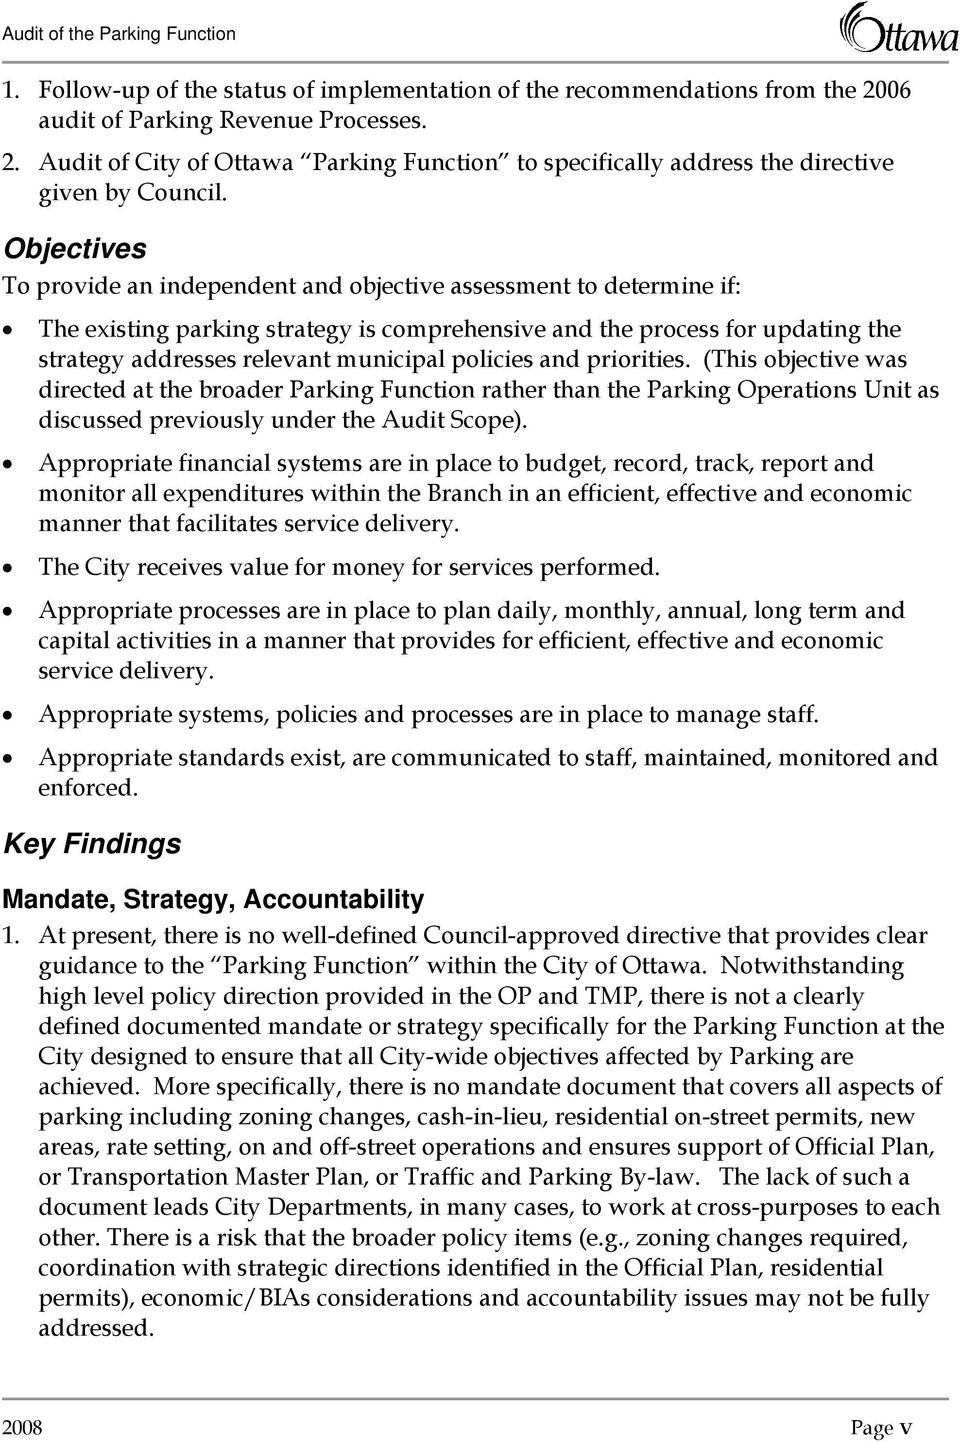 policies and priorities. (This objective was directed at the broader Parking Function rather than the Parking Operations Unit as discussed previously under the Audit Scope).